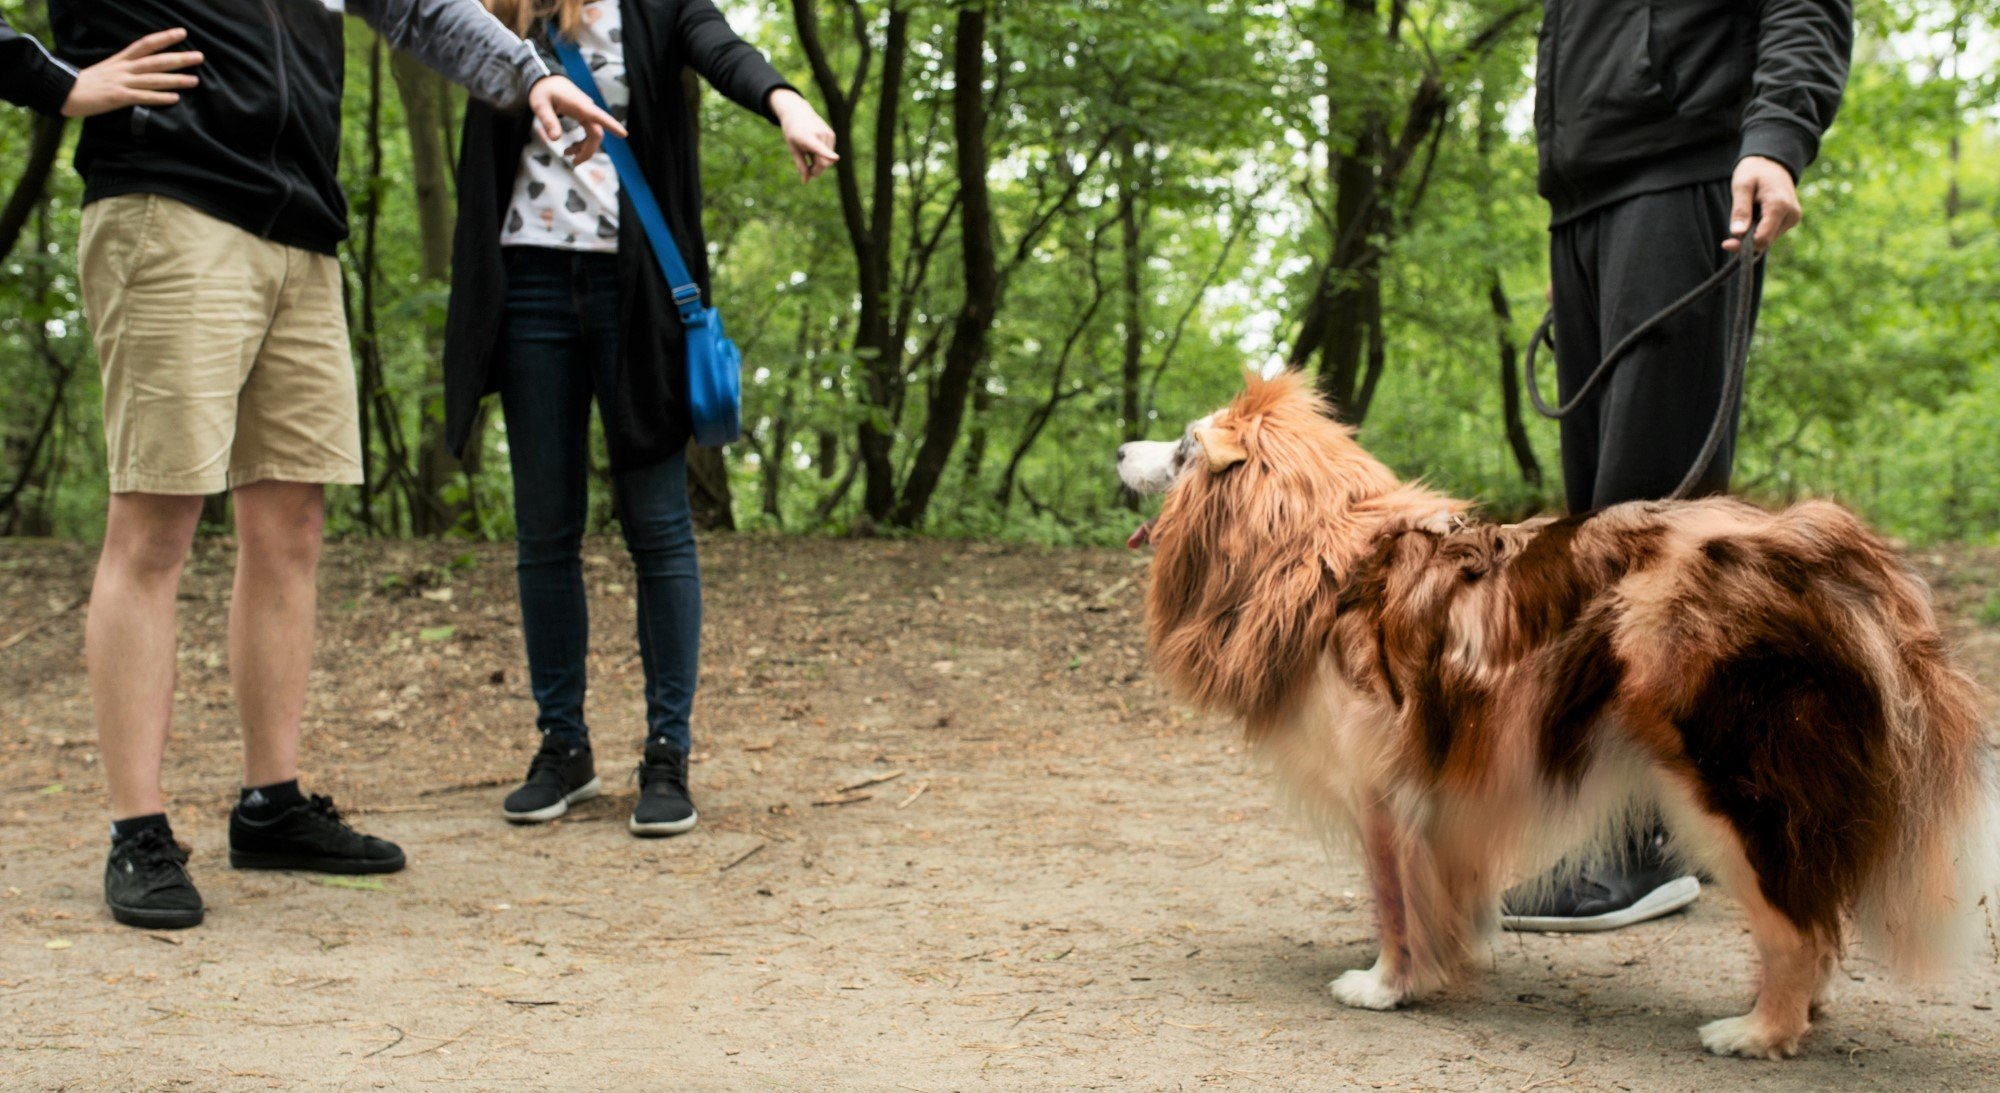 Lion Mane for Dog with Frisbee - Premium Quality, Realistic, Hilarious & Eye Catching Dog Lion Mane - Dog Costume with Ears - Comfortable Lion Wig for Medium and Large Dogs - Perfect Dog Gift by Joy4Pets (Image #6)